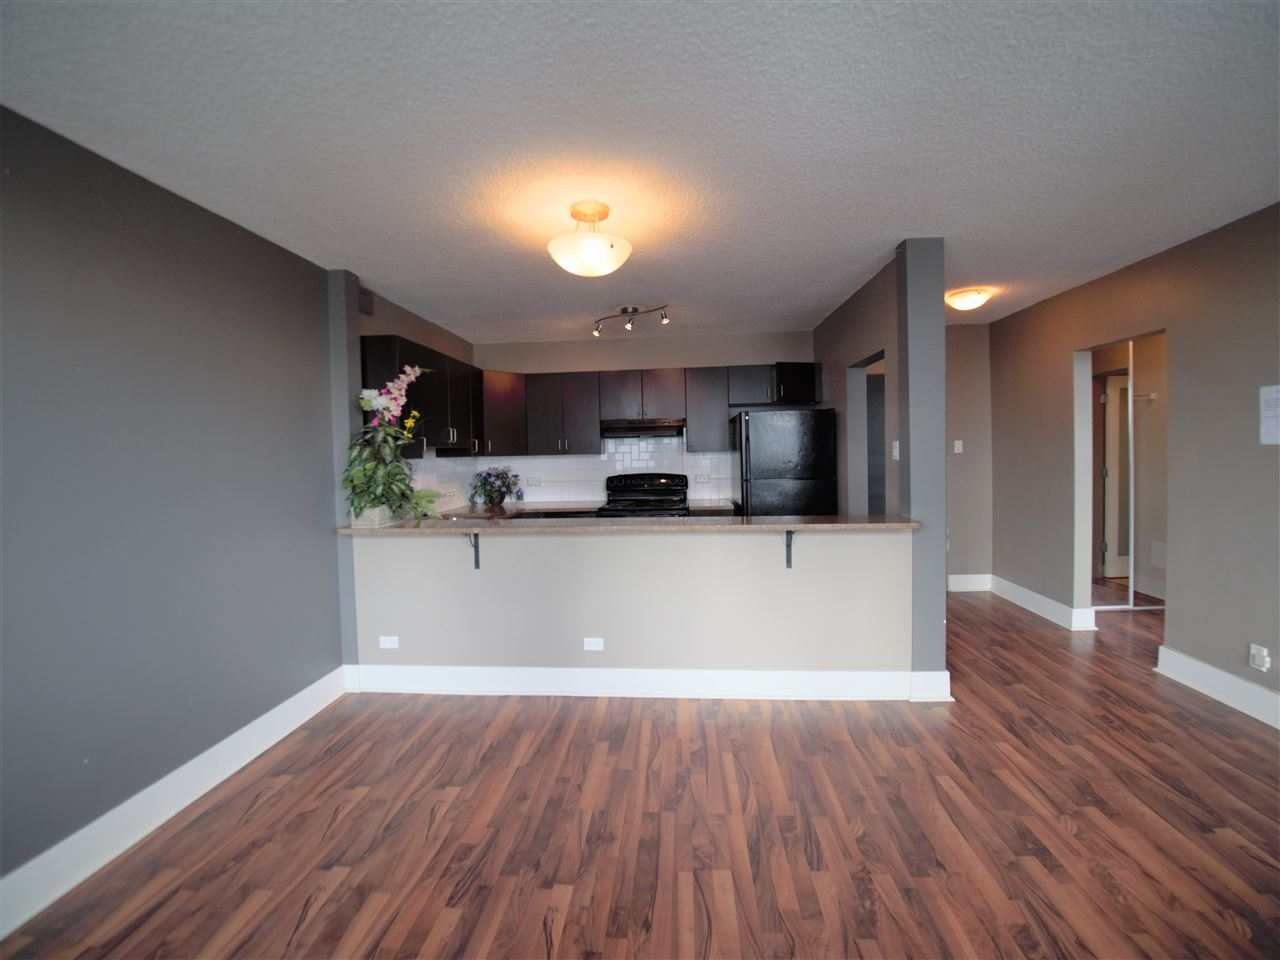 Near Downtown, Commonwealth Stadium and river valley. Top floor with 1 bedroom 1 bathroom unit and granite counters. Good size of master bedroom with large closet. The long balcony is good to relax anytime of day, also good for planters for the summer and enjoy the view of the river valley. This unit is a must to see the value.